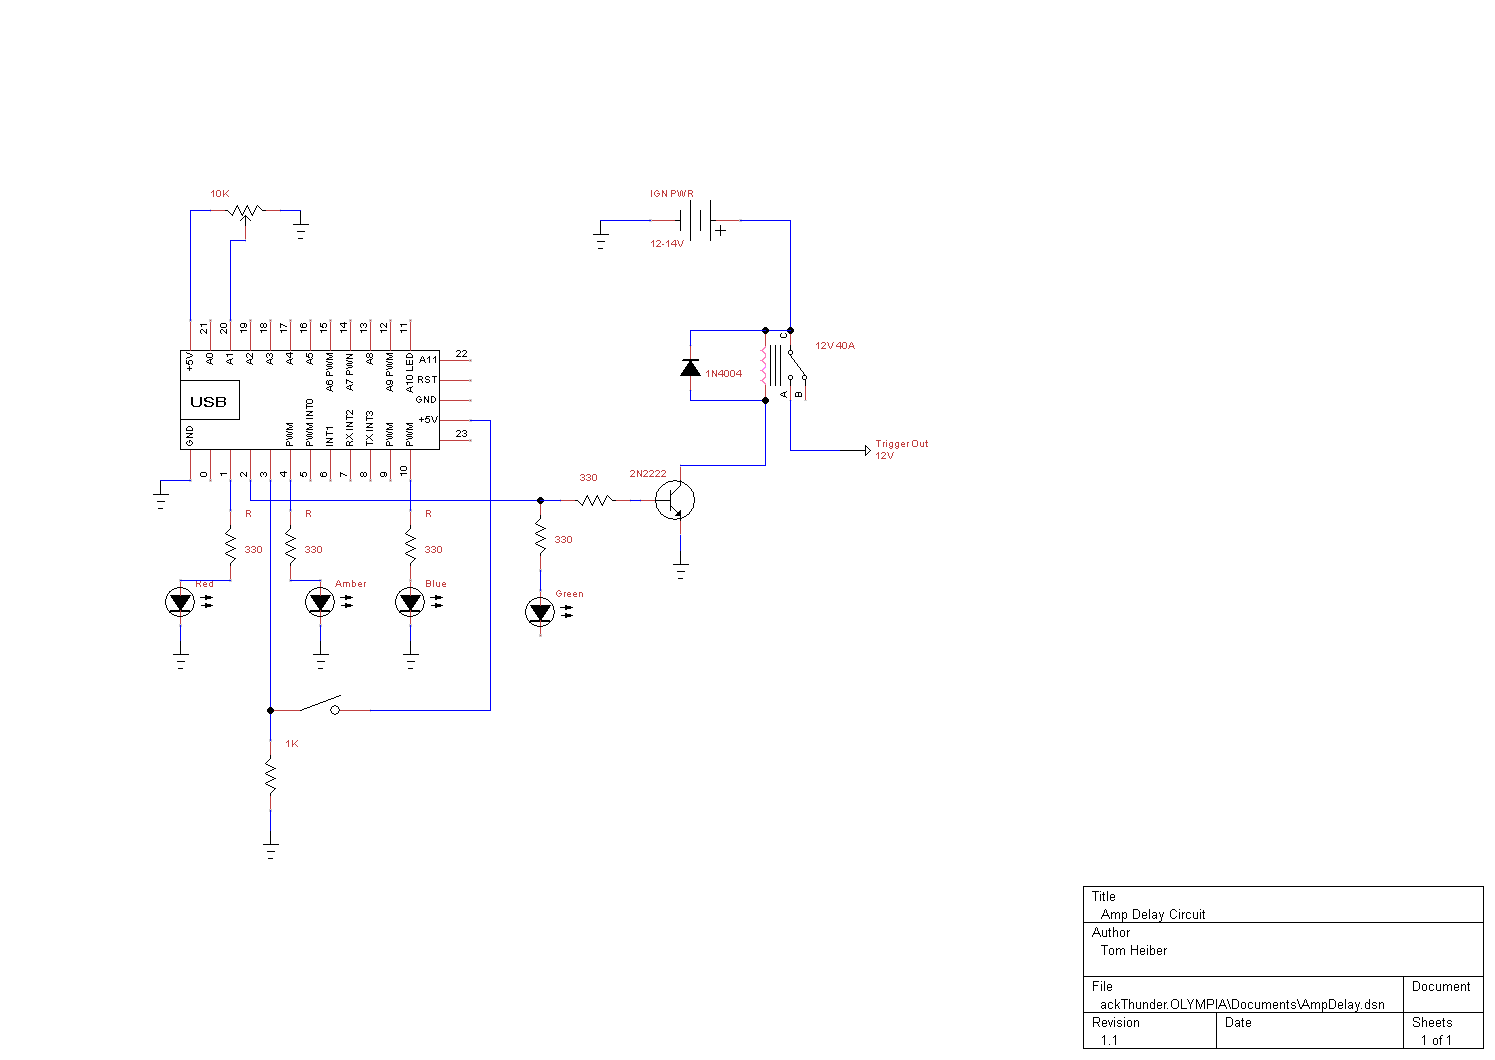 smart amp delay - schematic